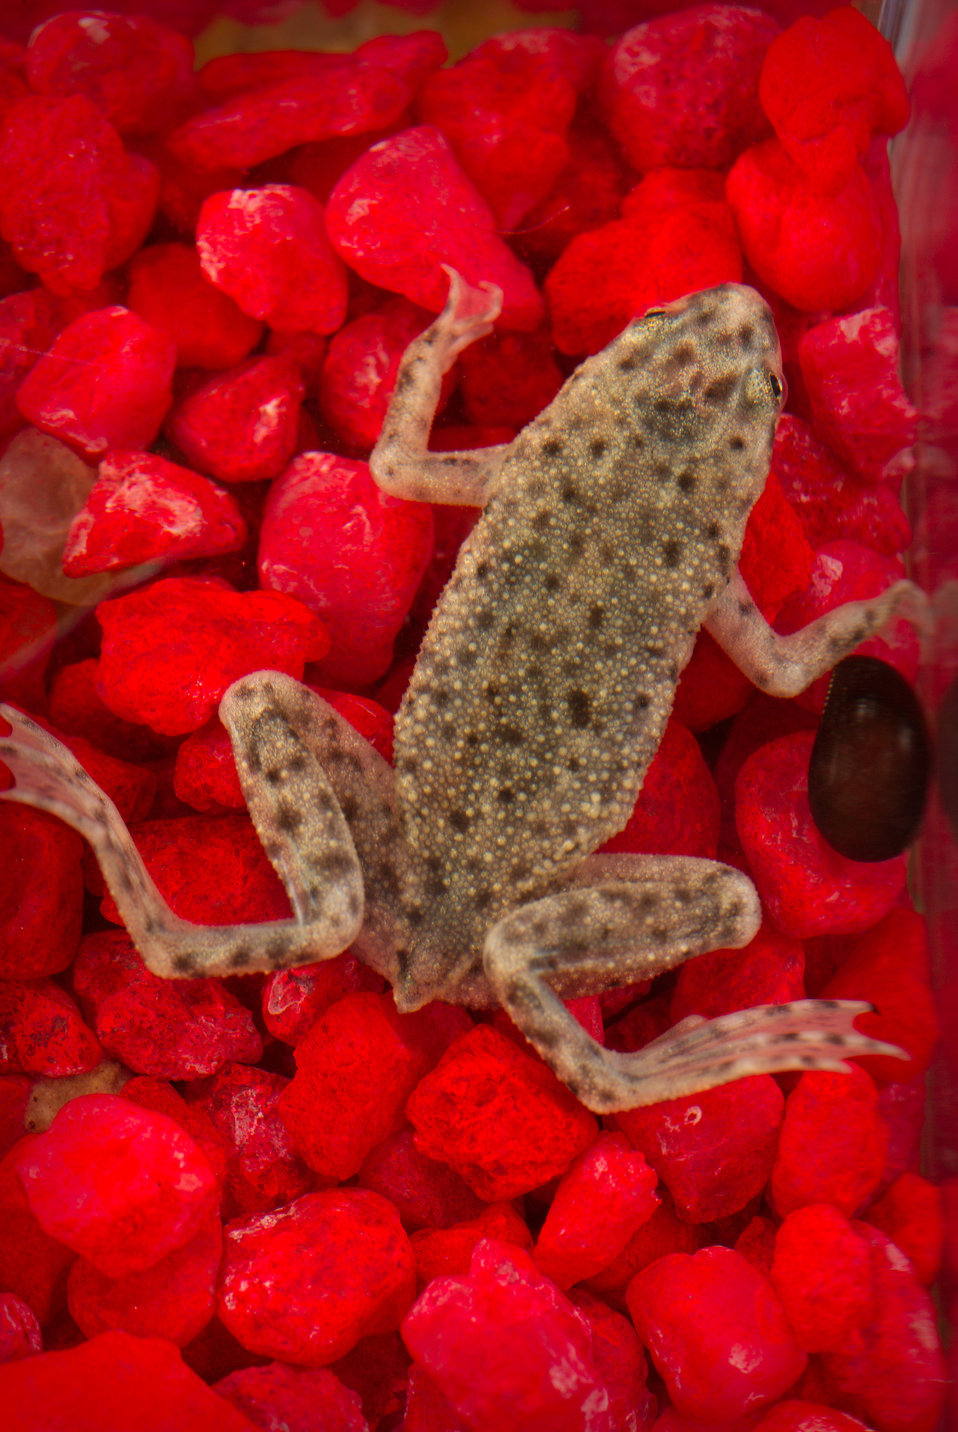 This photograph depicts an African dwarf frog, Hymenochirus boettgeri.